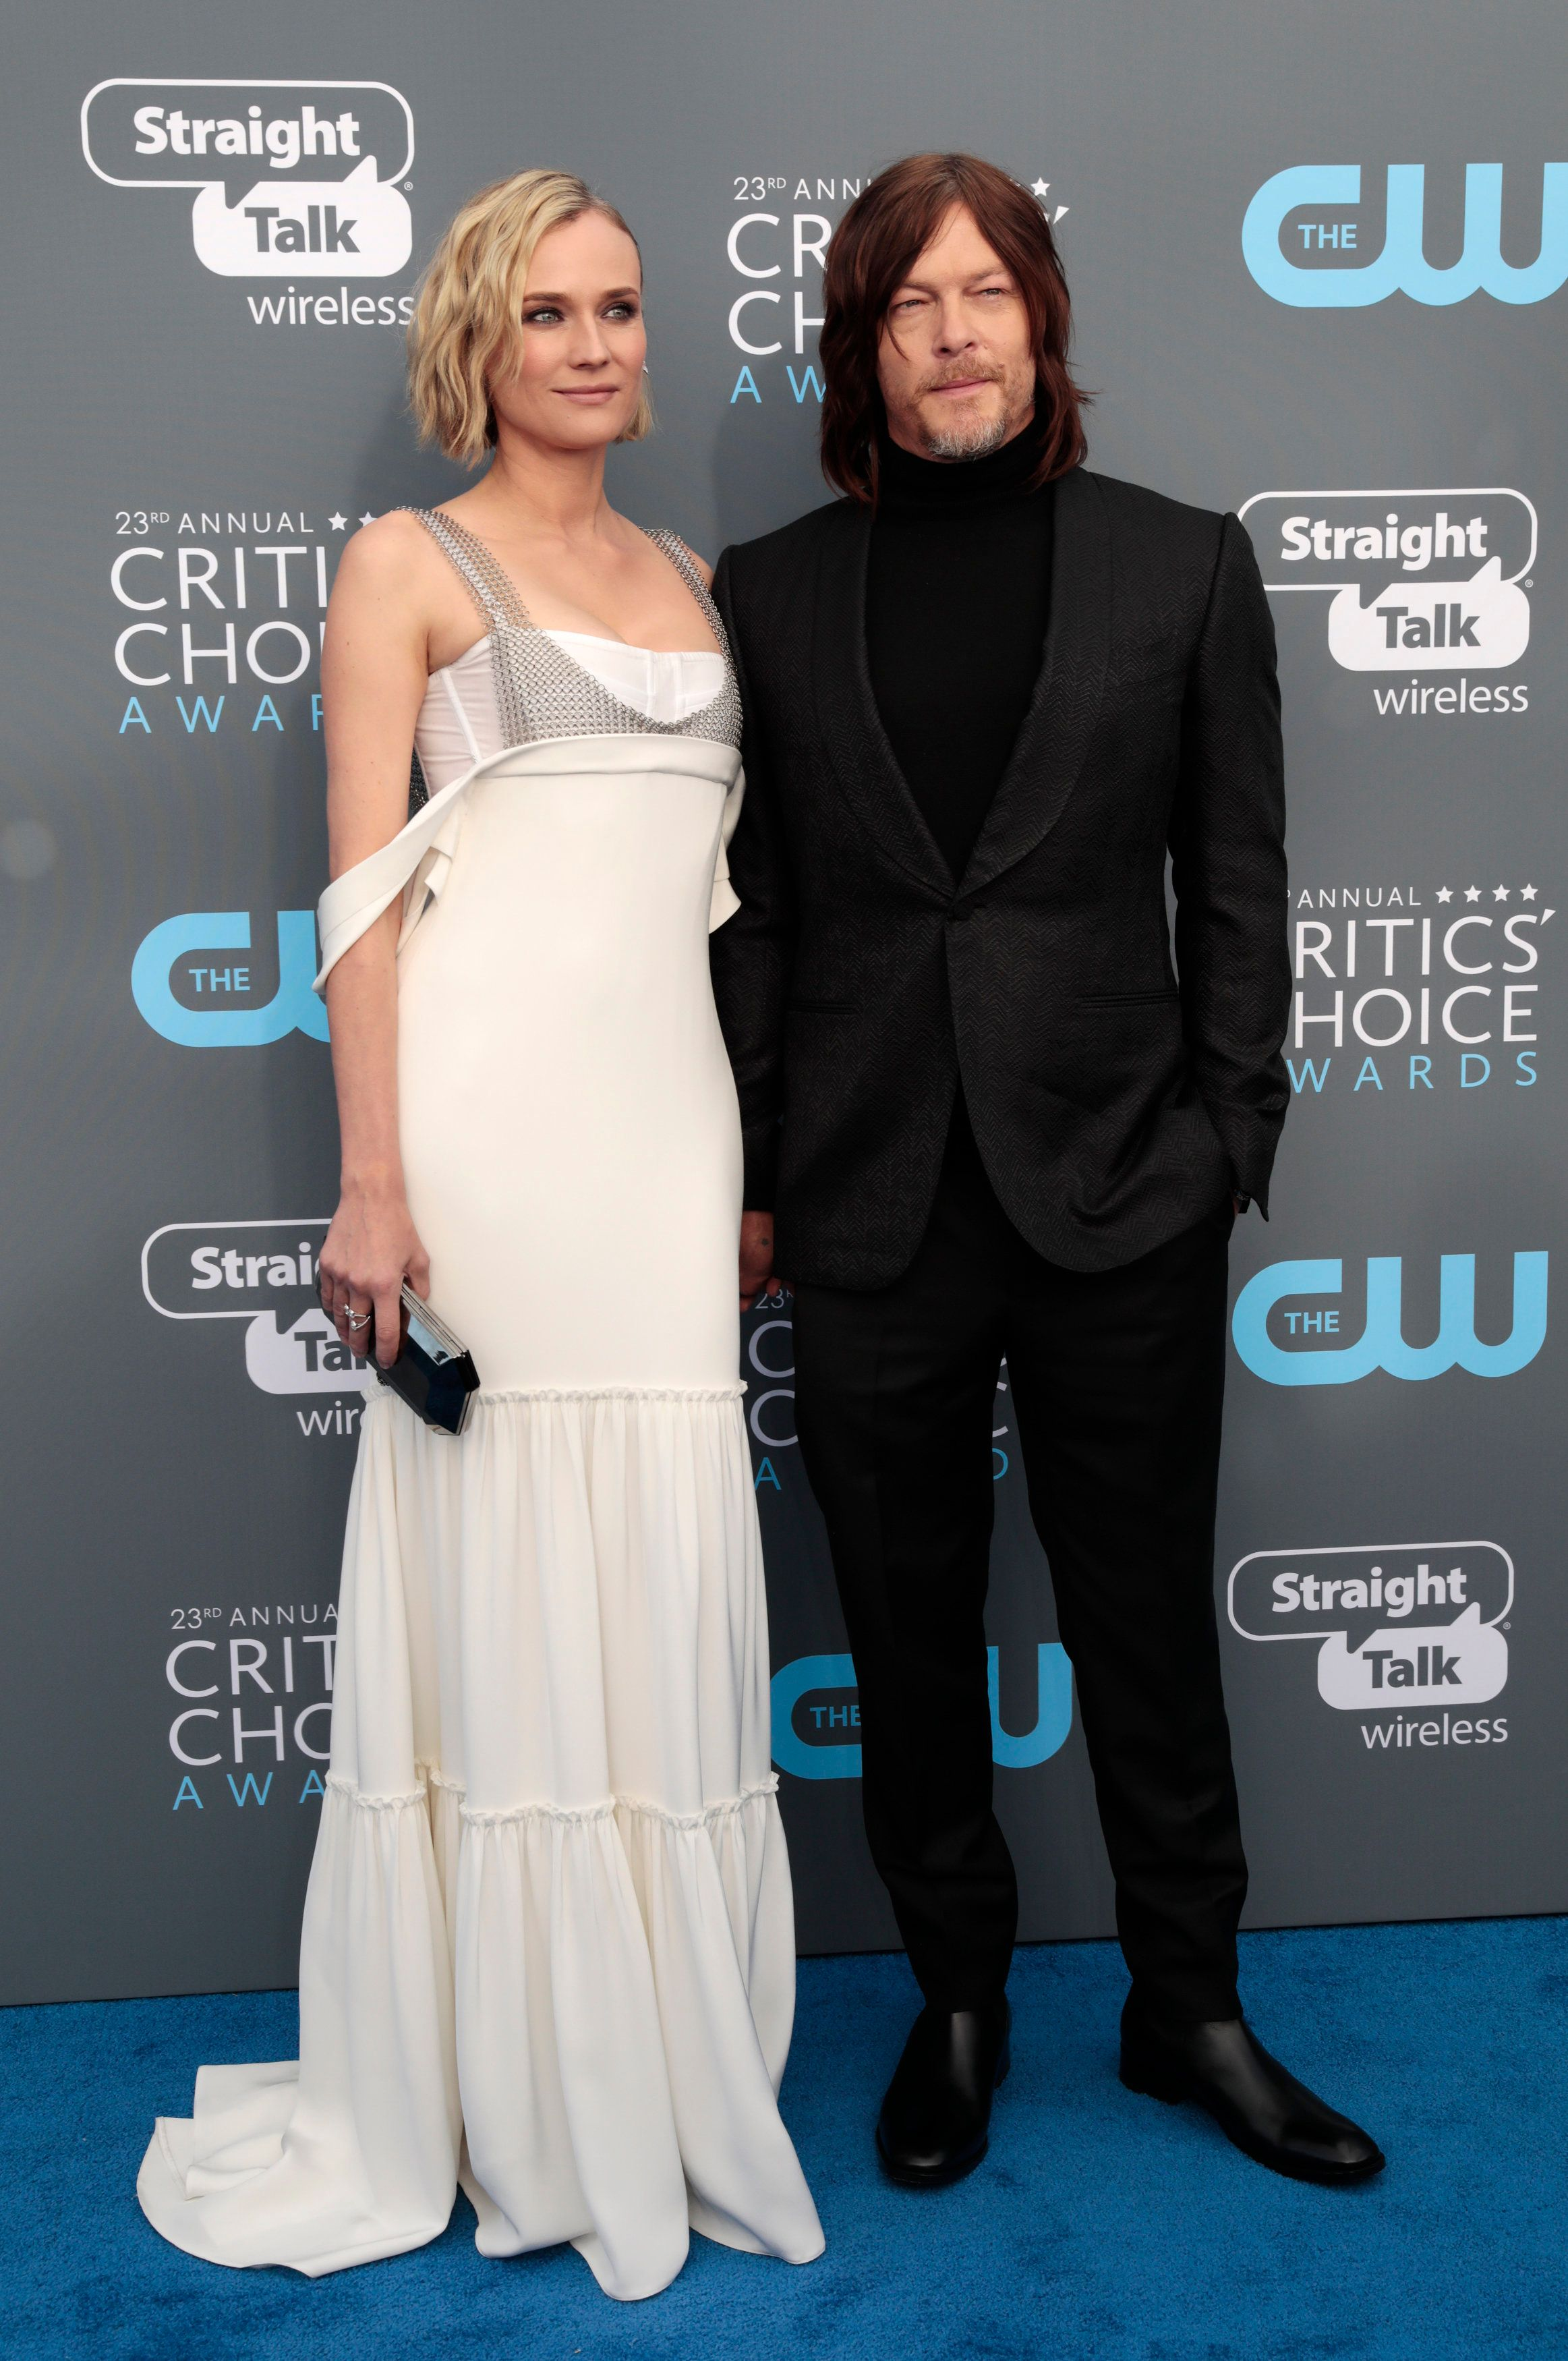 23rd Critics' Choice Awards – Arrivals – Santa Monica, California, U.S., 11/01/2018 – Diane Kruger and Norman Reedus. REUTERS/Monica Almeida